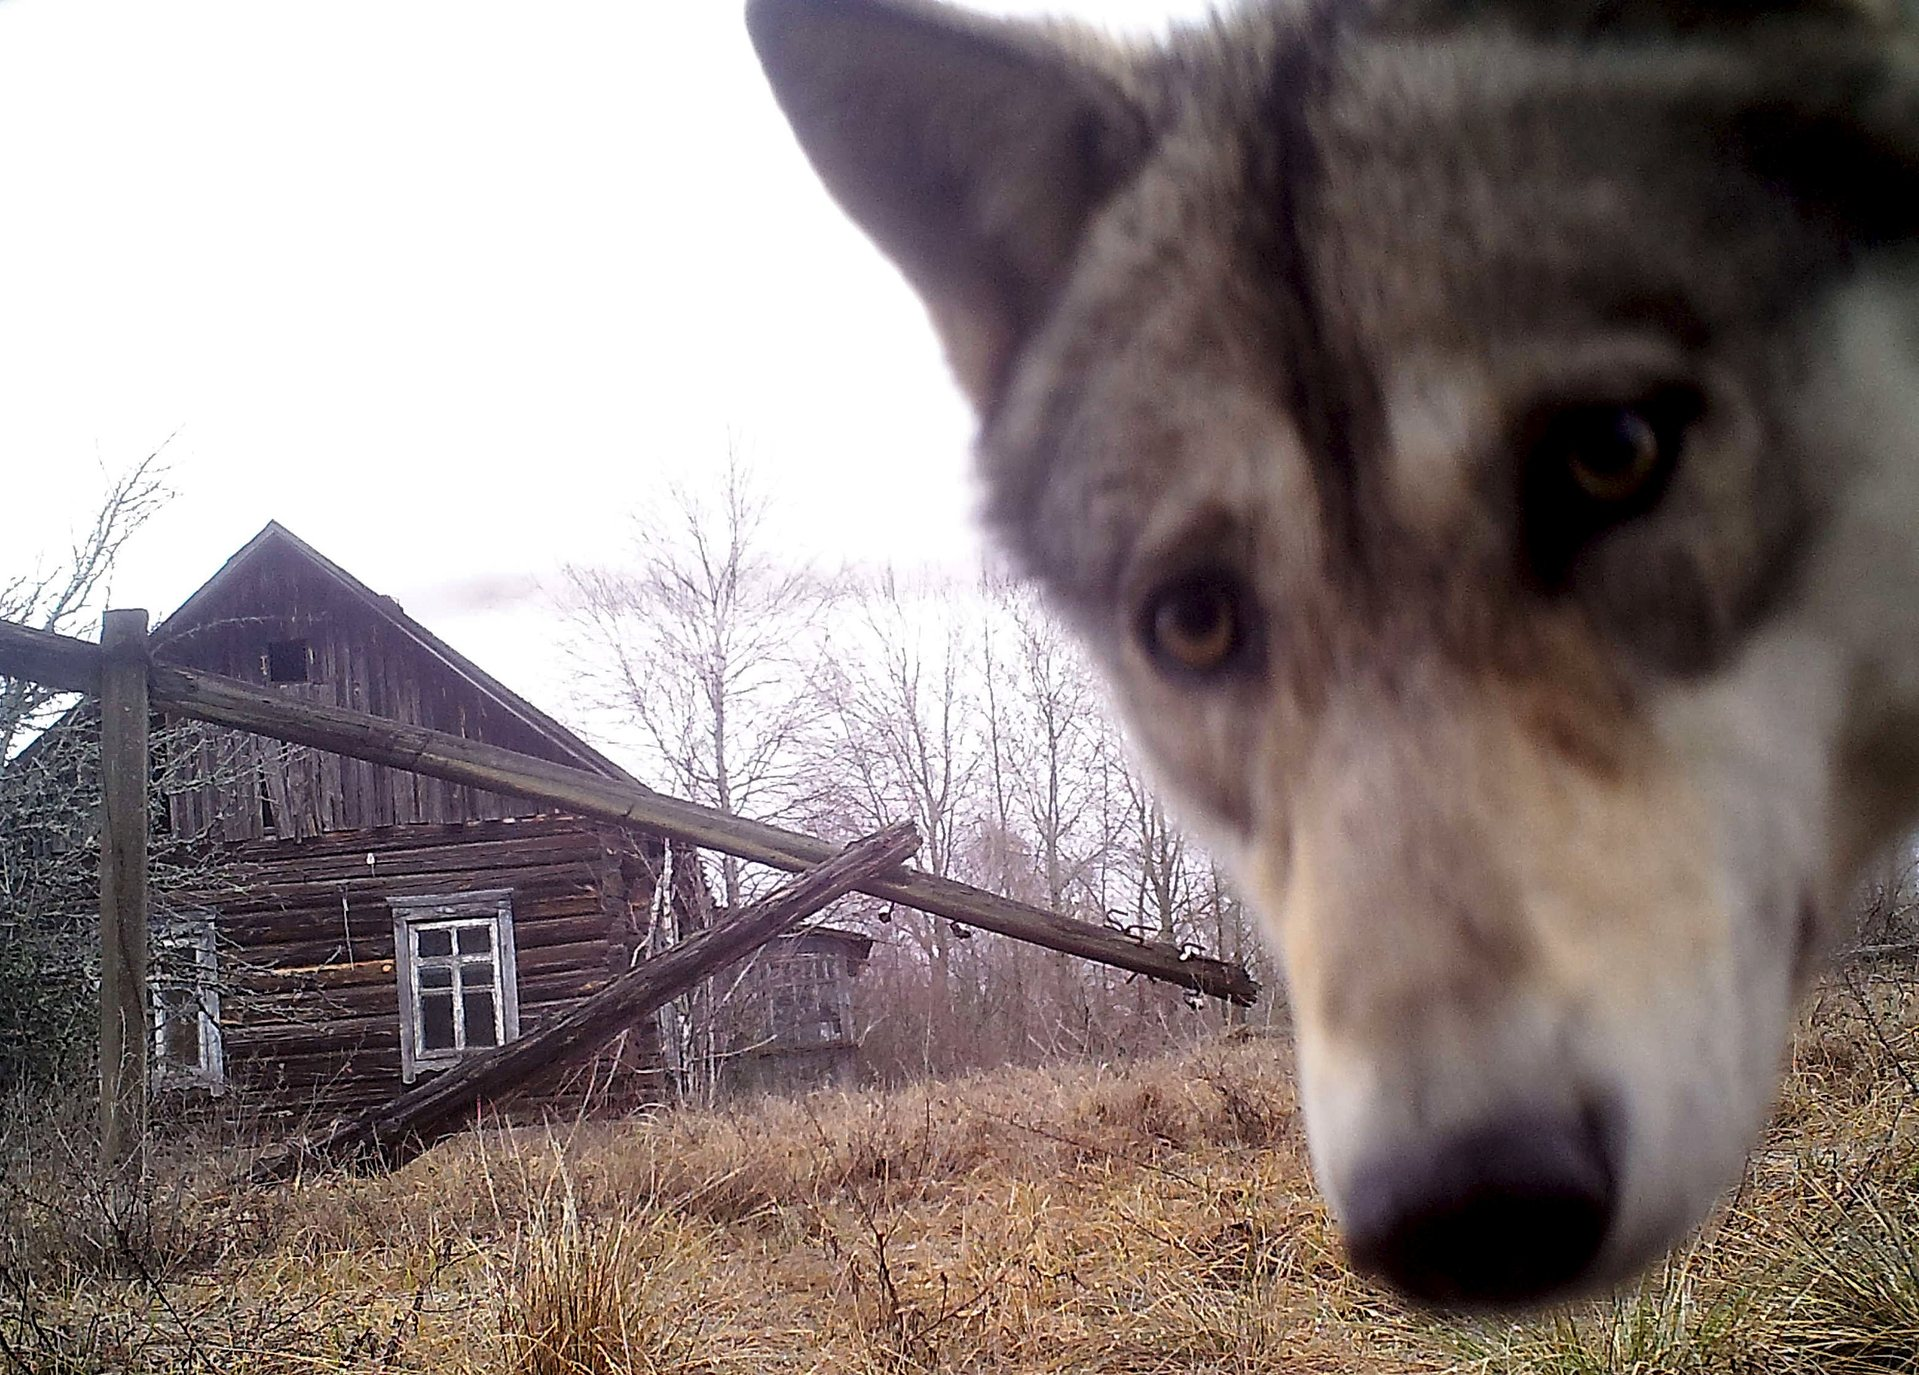 A wolf looks into the camera at the Chernobyl nuclear site in the abandoned village of Orevichi, Belarus    Vasily Fedosenko/Reuters